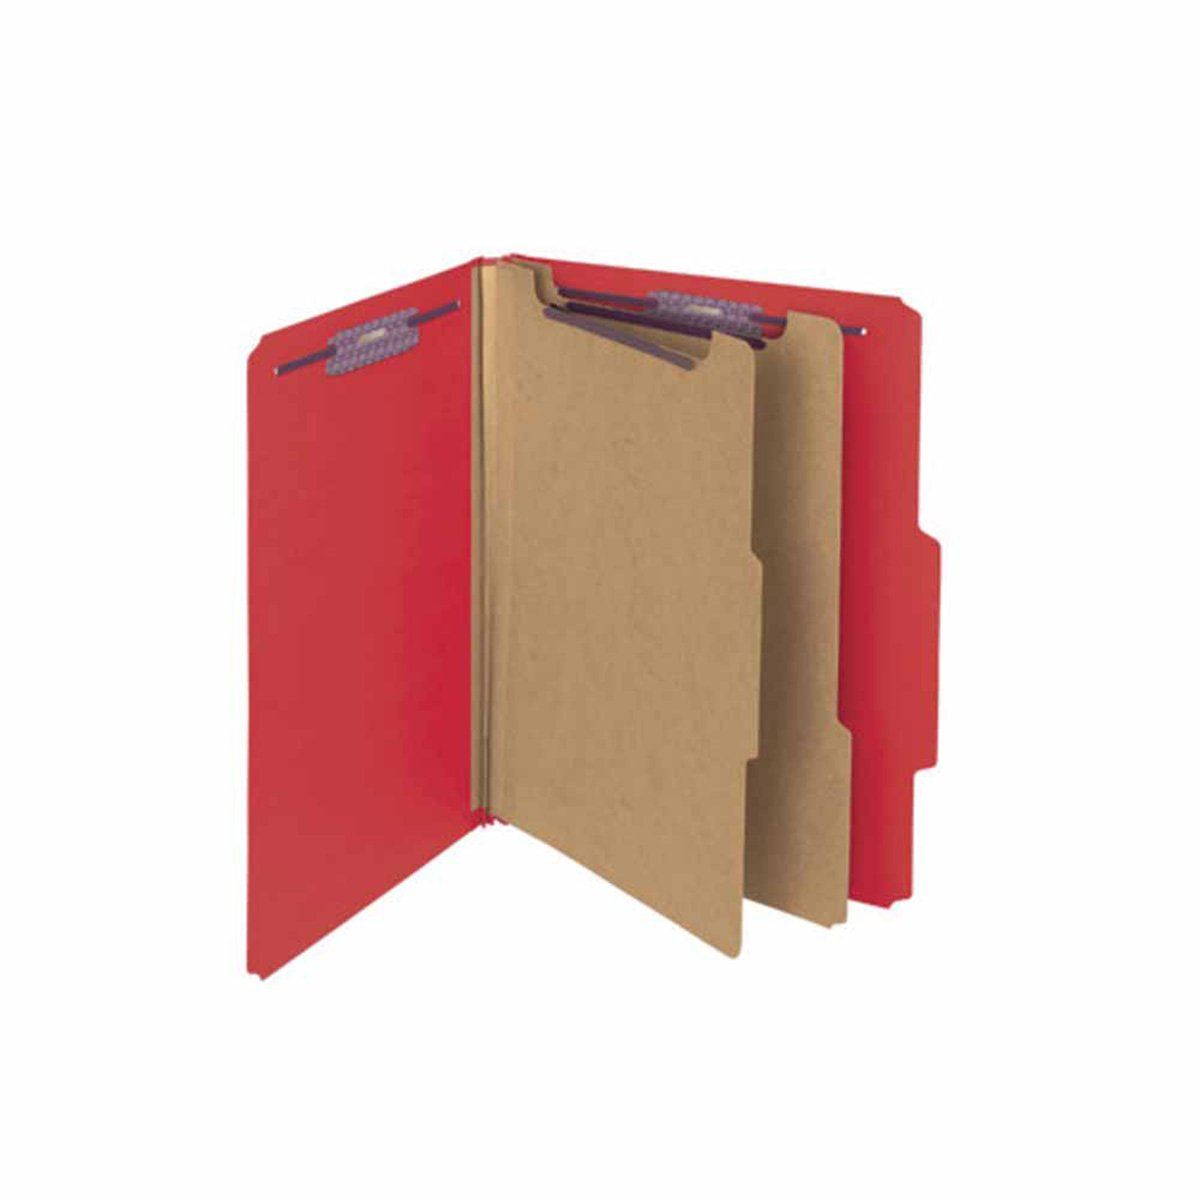 SMEAD C402-5A-2D-BR5 Top Tab Folder, FAS #1 and #3, 25Pt Pressboard, 2 Dividers, 11 3/4'' x 10'', Bright Red (Pack of 50)